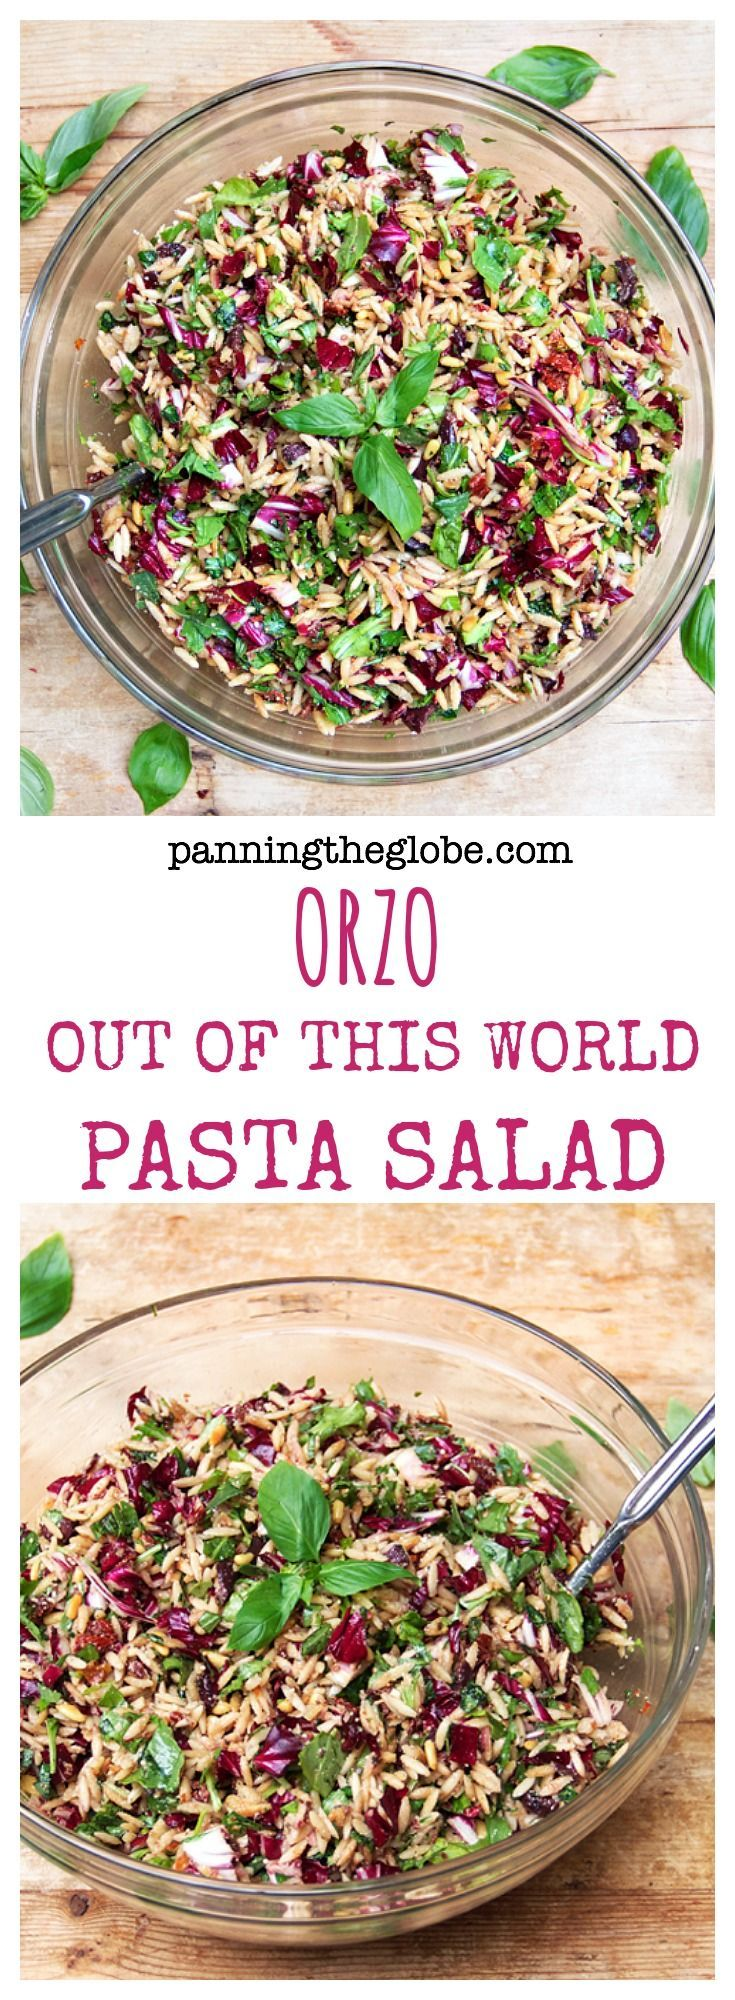 My all-time favorite pasta salad! Tender orzo tossed with olive oil, balsamic, Kalamata olives, sun-dried tomatoes, chopped radicchio, arugula, basil, garlic, toasted pine nuts and parmesan cheese.